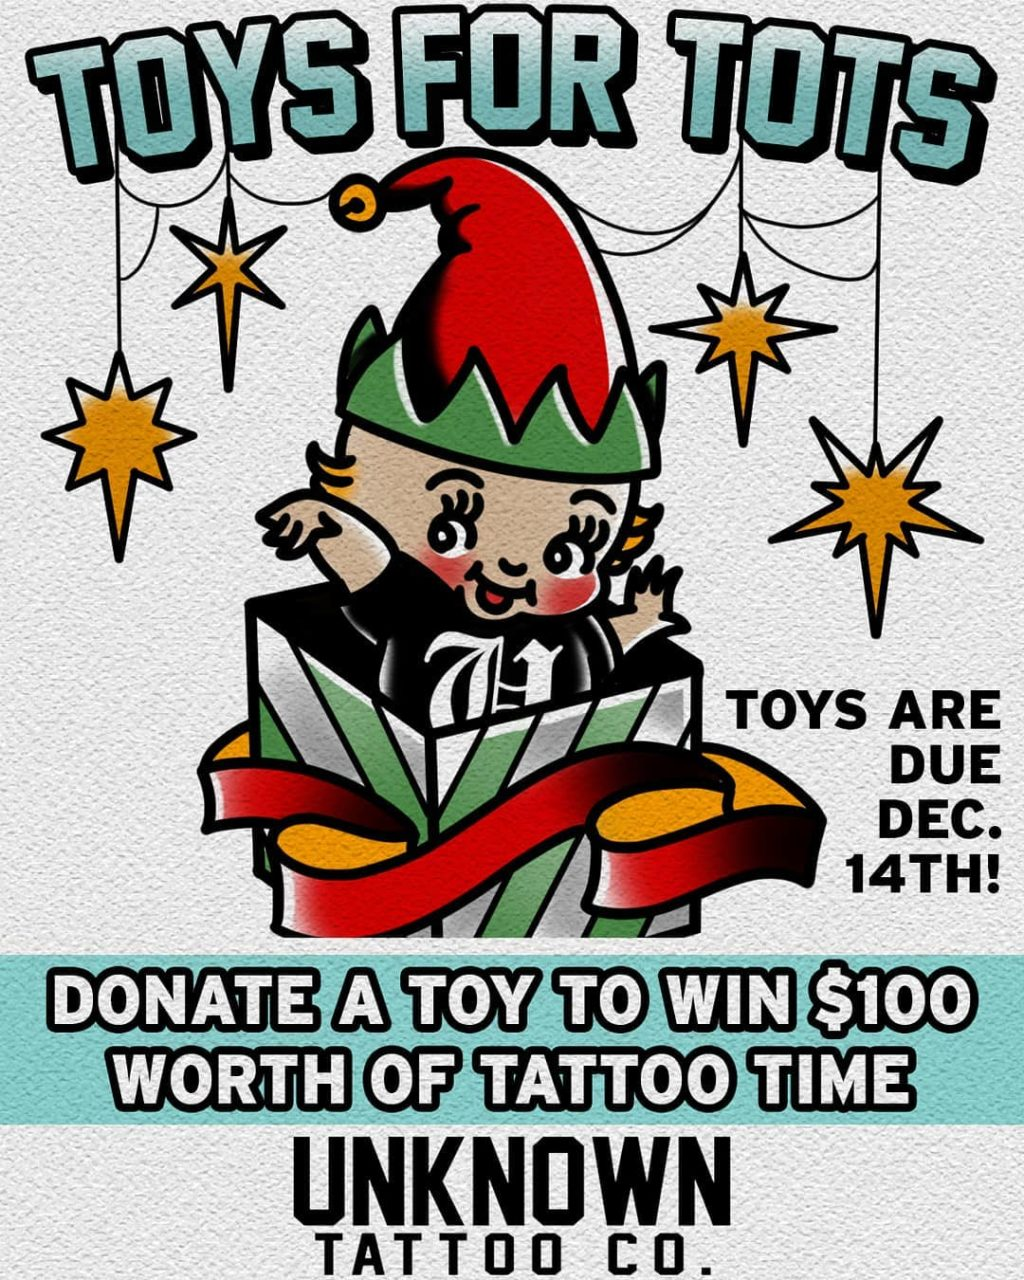 Toys for Tots event at Unknown Tattoo Co in Everett Washington